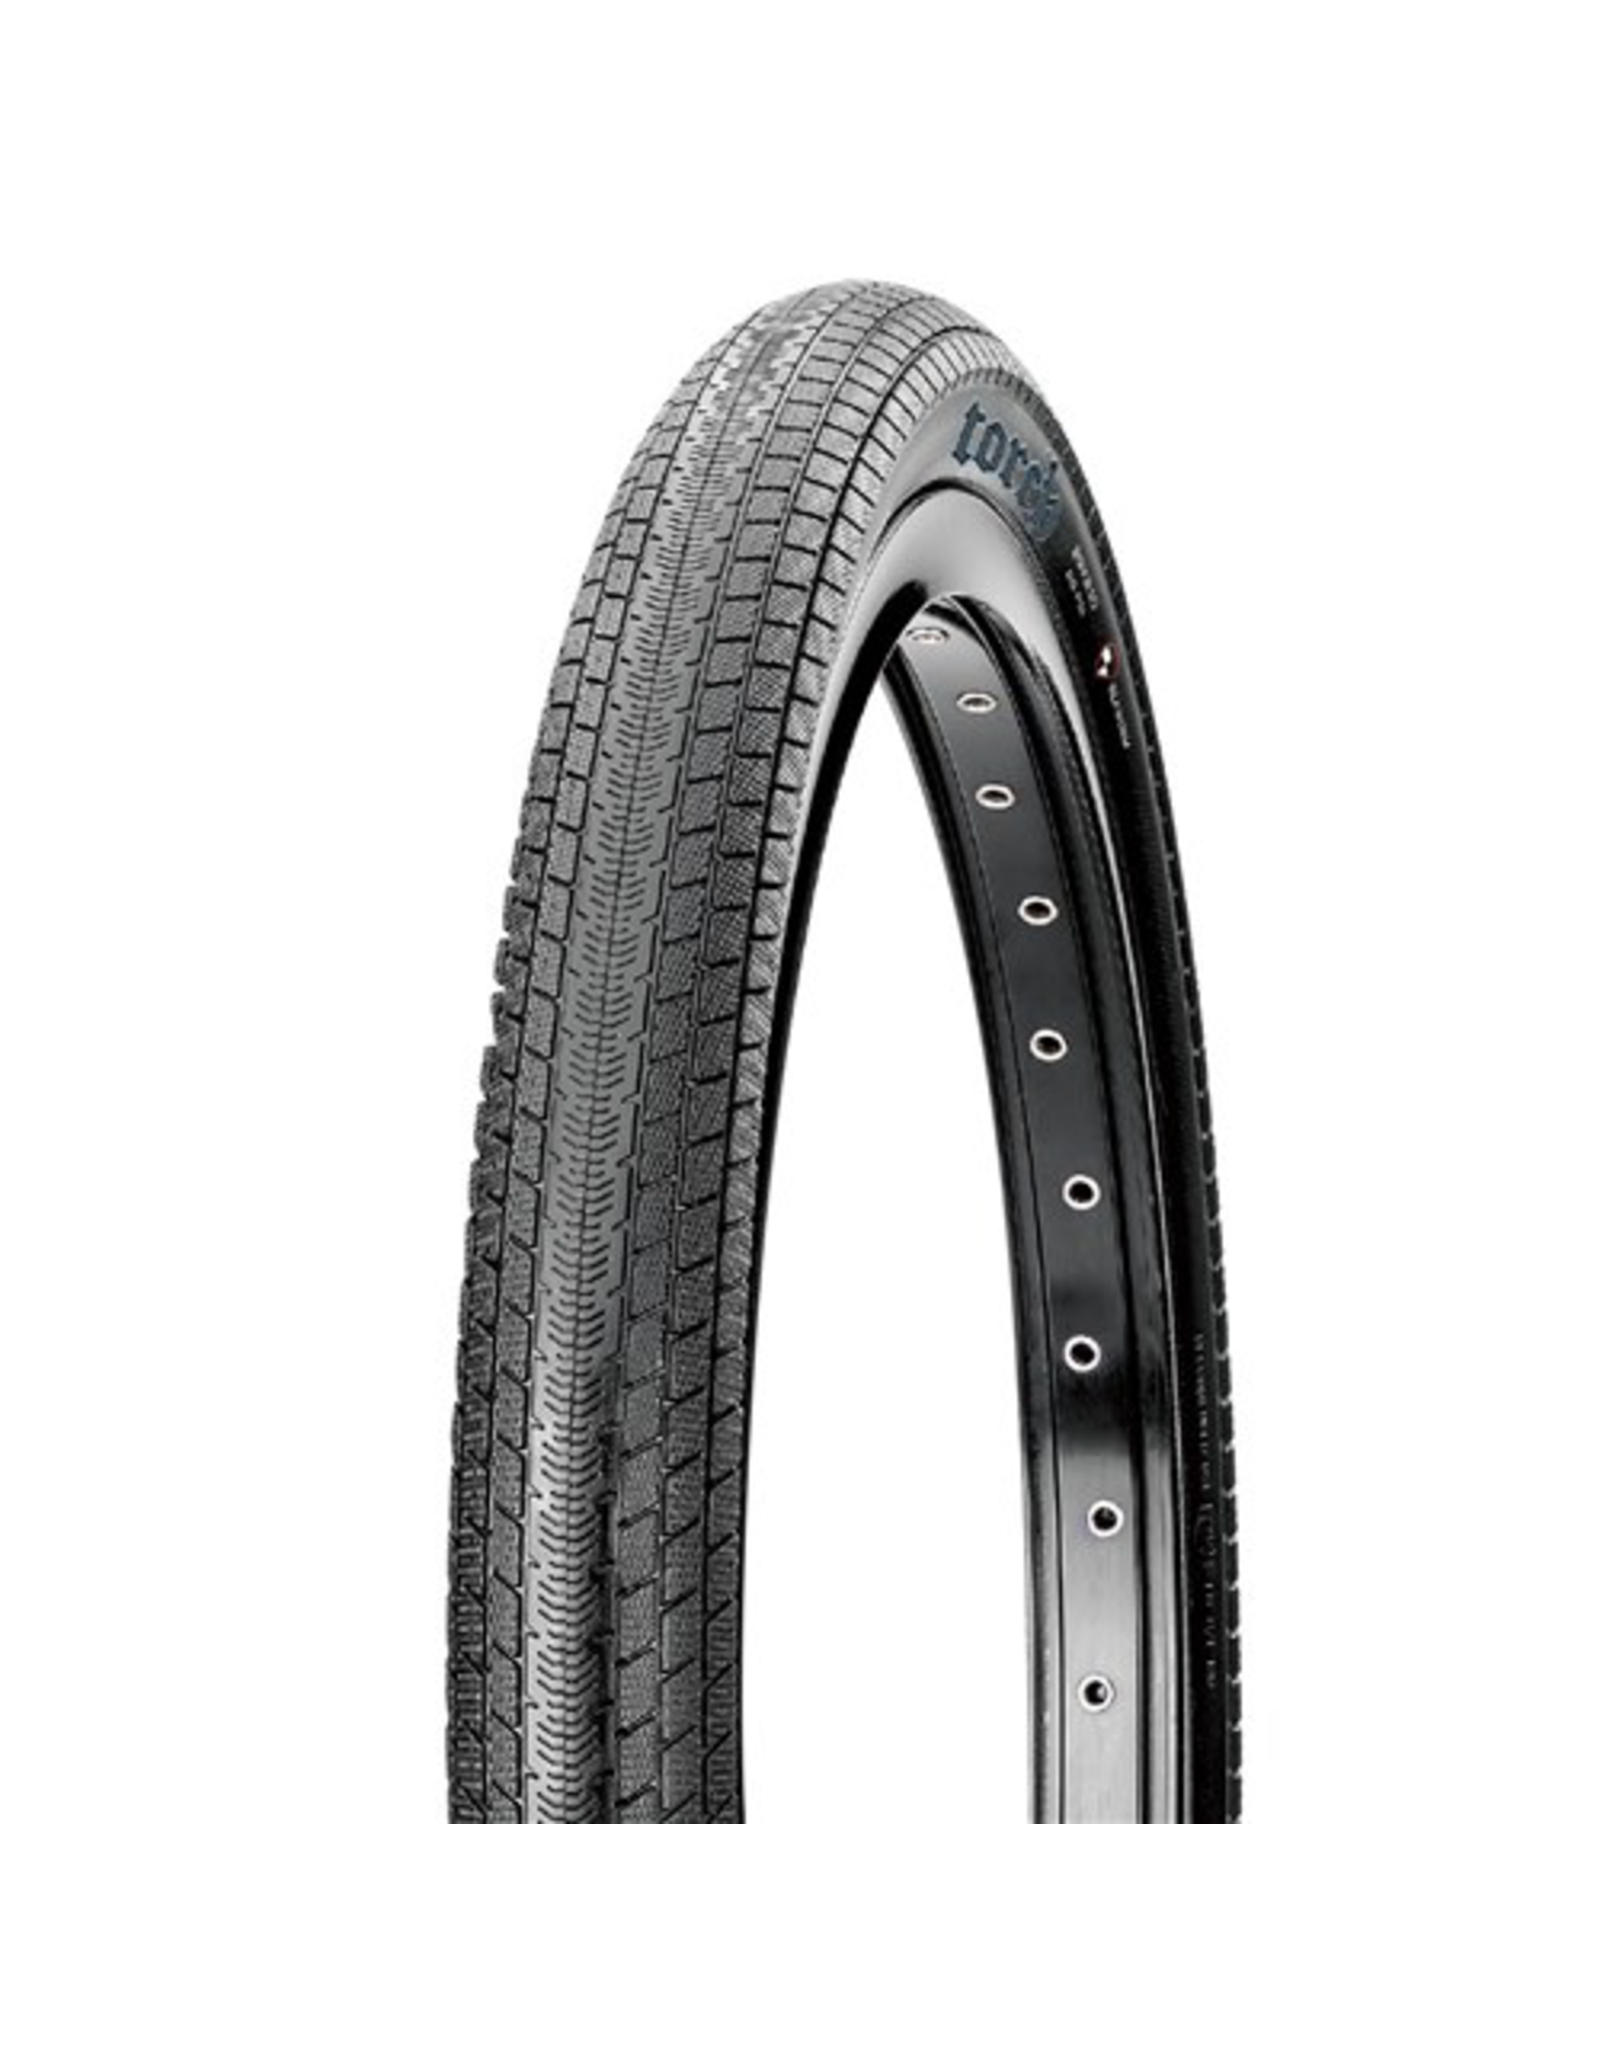 MAXXIS TYRE MAXXIS TORCH 24 X 1.75 SILKWORM WIRE BEAD 120TPI